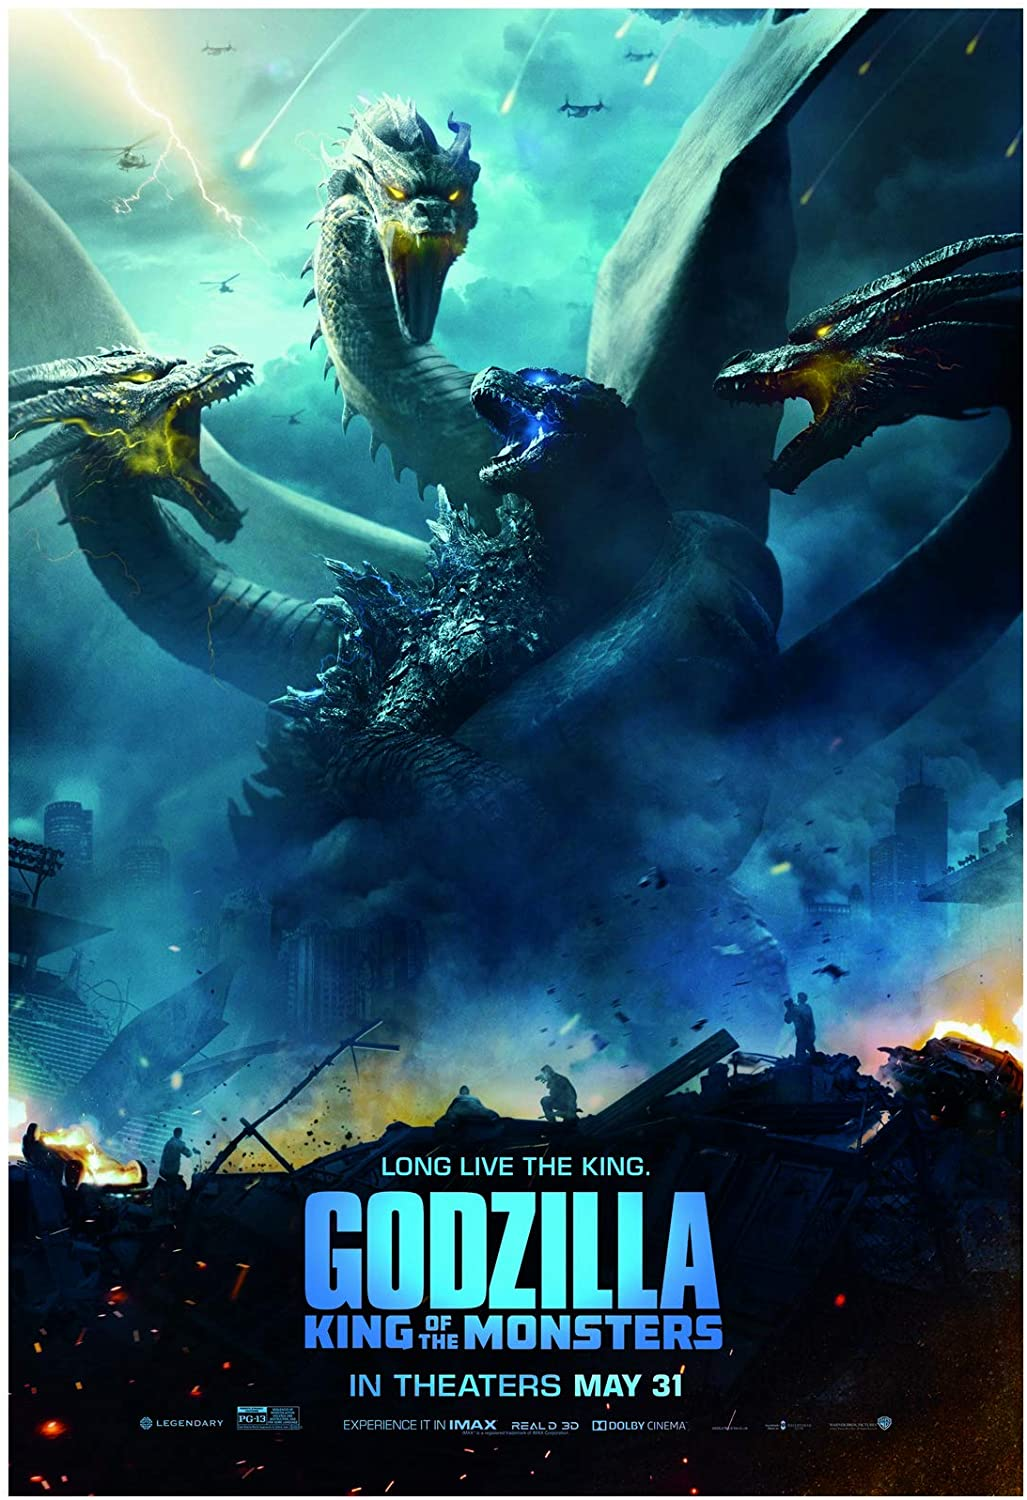 Godzilla King of The Monsters Movie Poster 24 x 36 Inches Full Sized Print Unframed Ready for Display